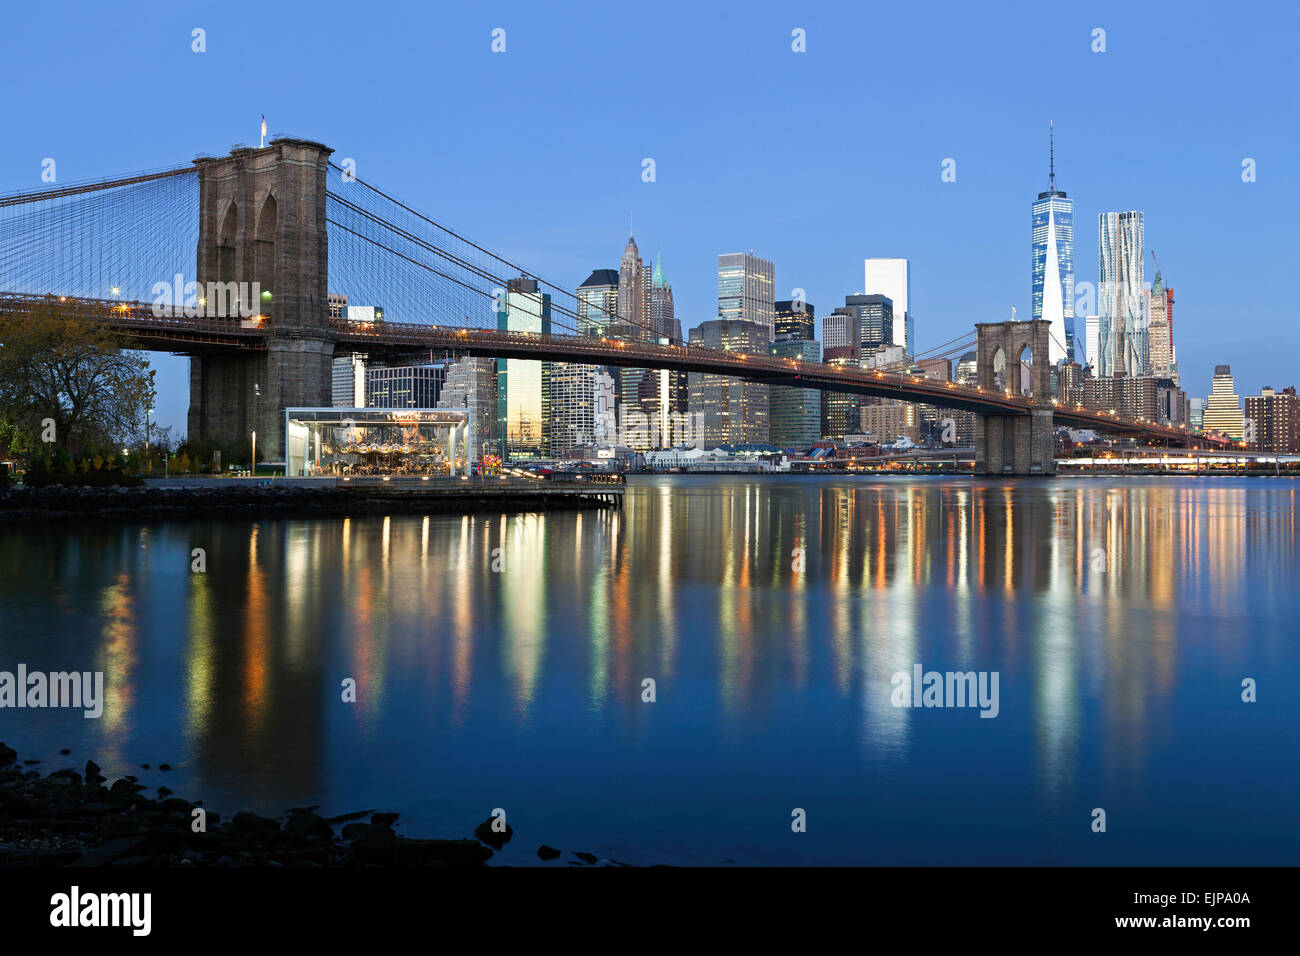 USA, New York City, Downtown Financial district of Manhattan, One World Trade Center and the Brooklyn Bridge Stock Photo